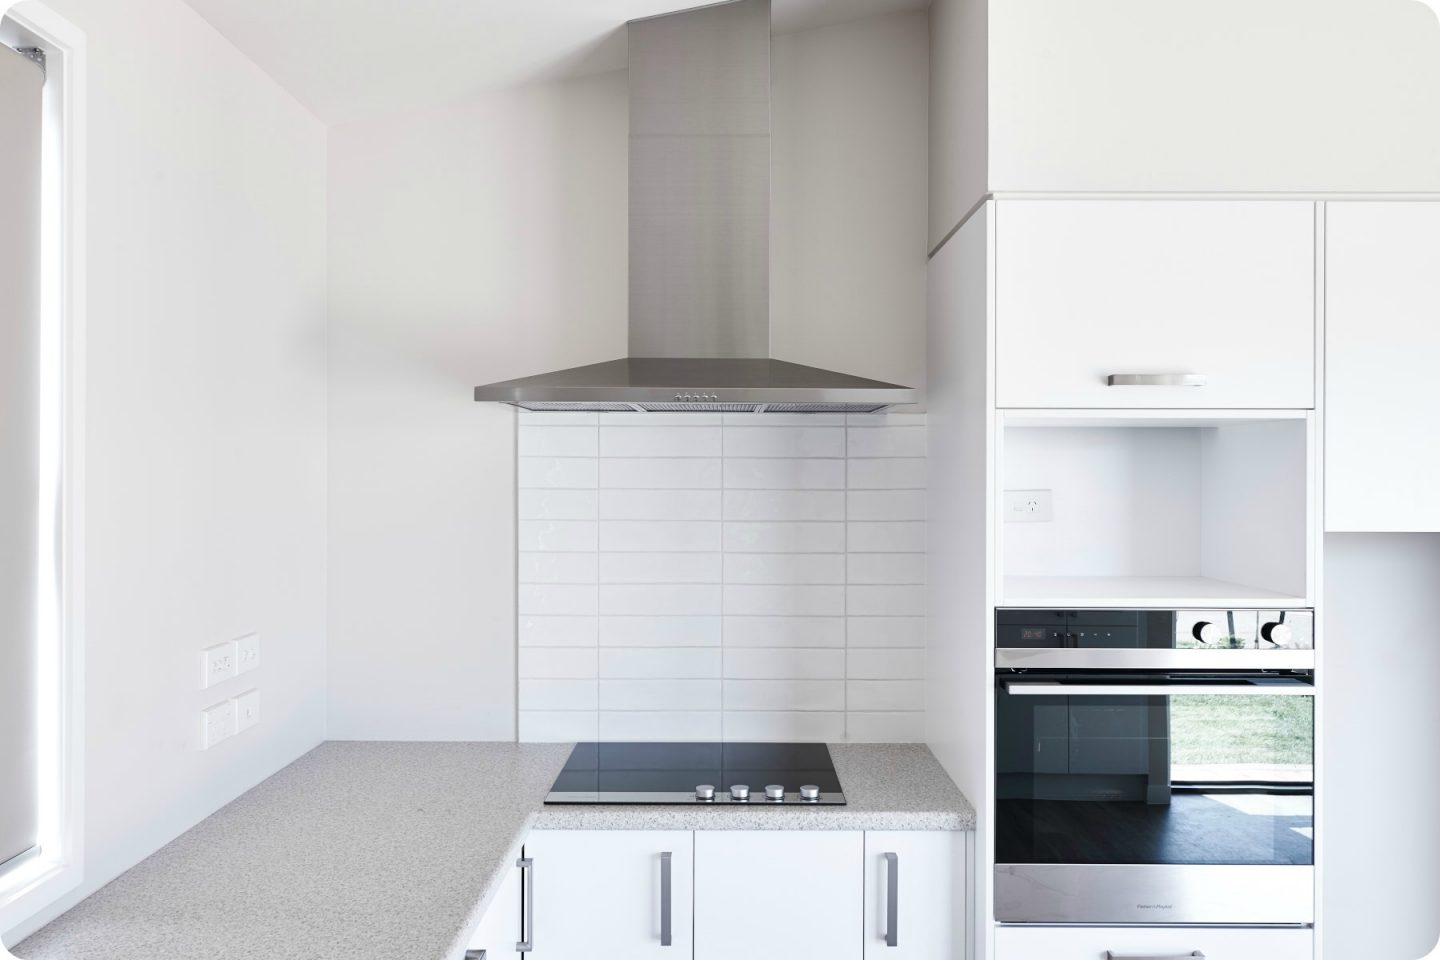 Charmant DIY: How To Install A Range Hood